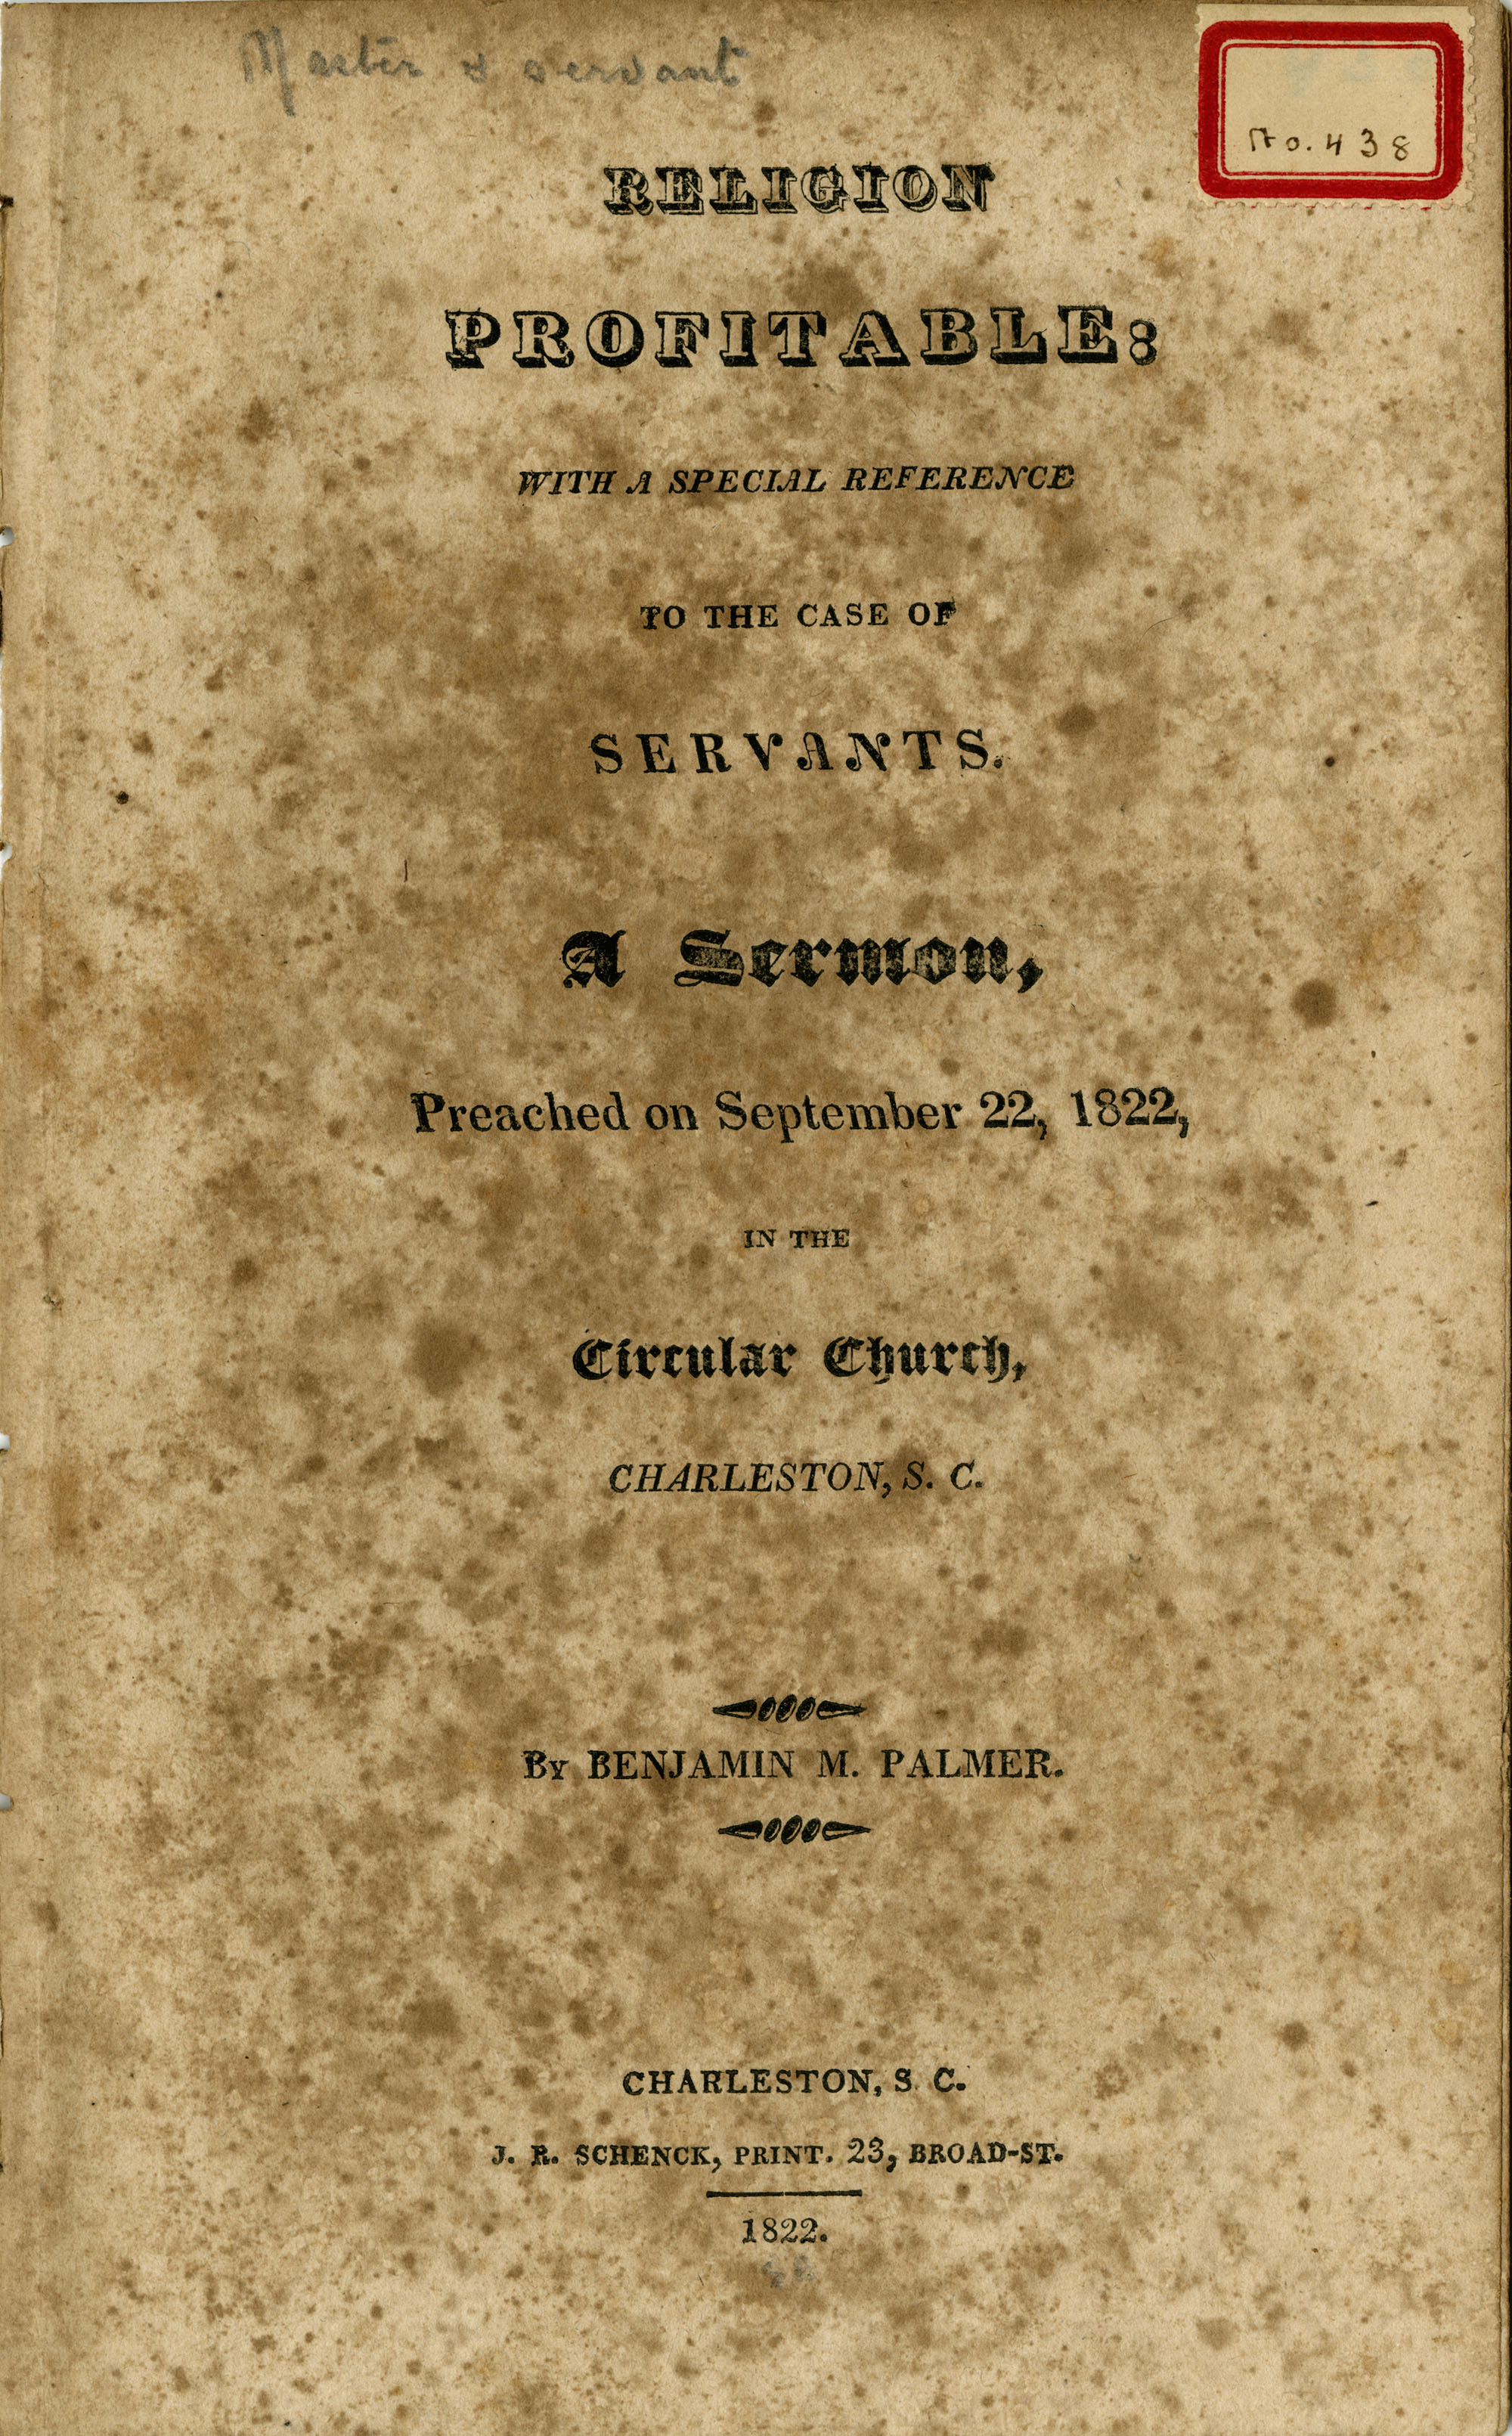 Religion Profitable: With a Special Reference to the Case of Servants. A Sermon, Preached on September 22, 1822, in the Circular Church, Charleston, S.C. By Benjamin M. Palmer.